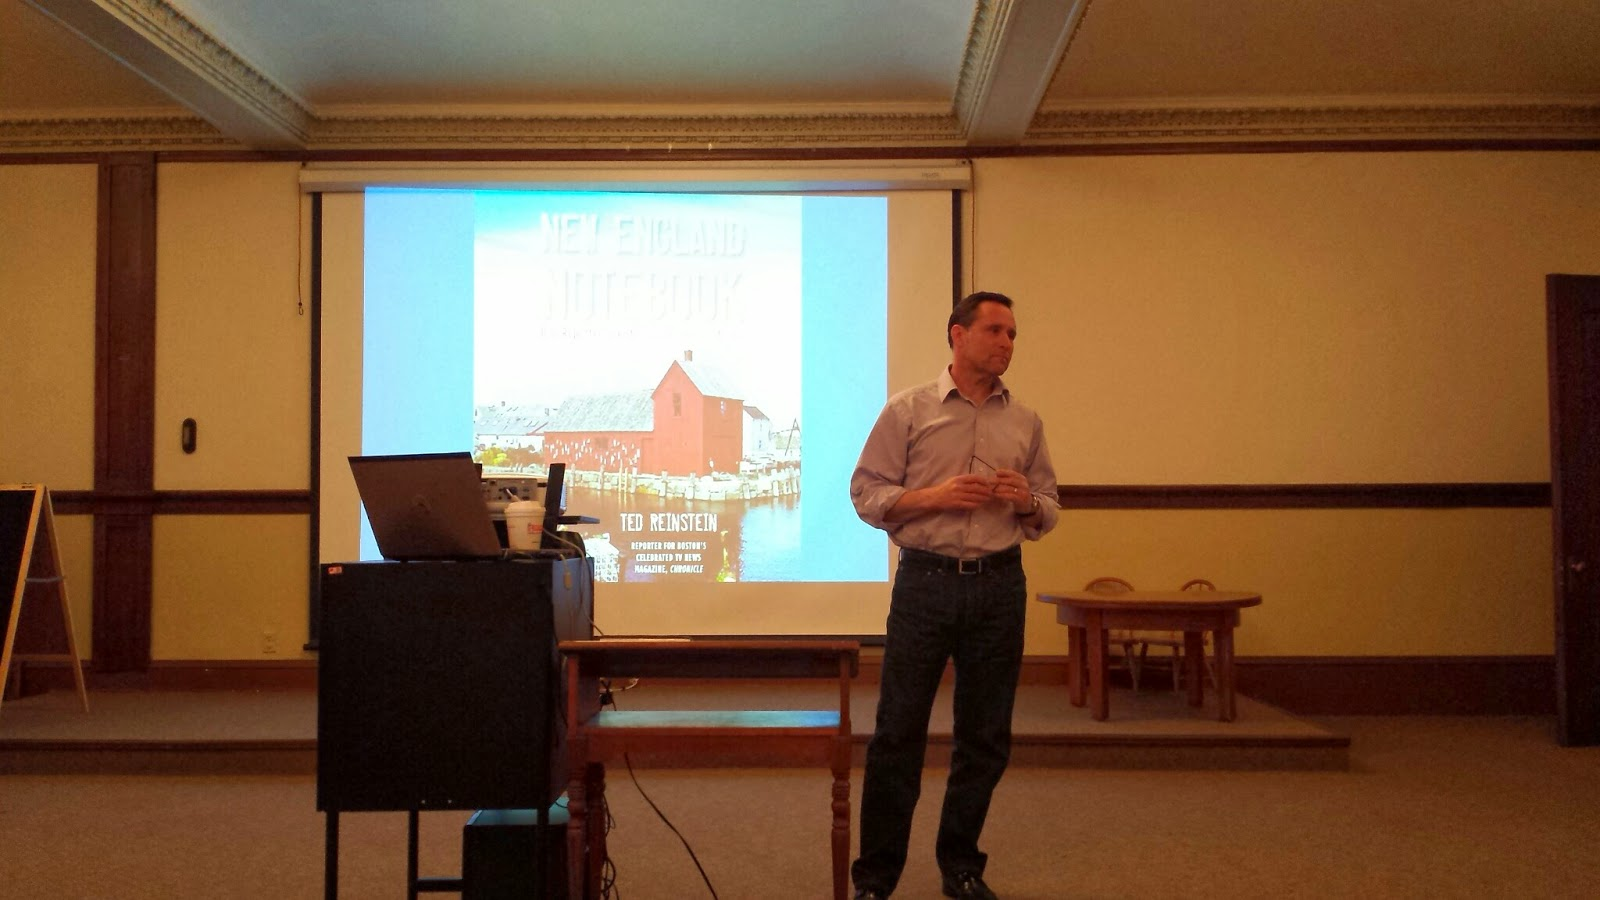 Ted Reinstein during his presentation at the Library